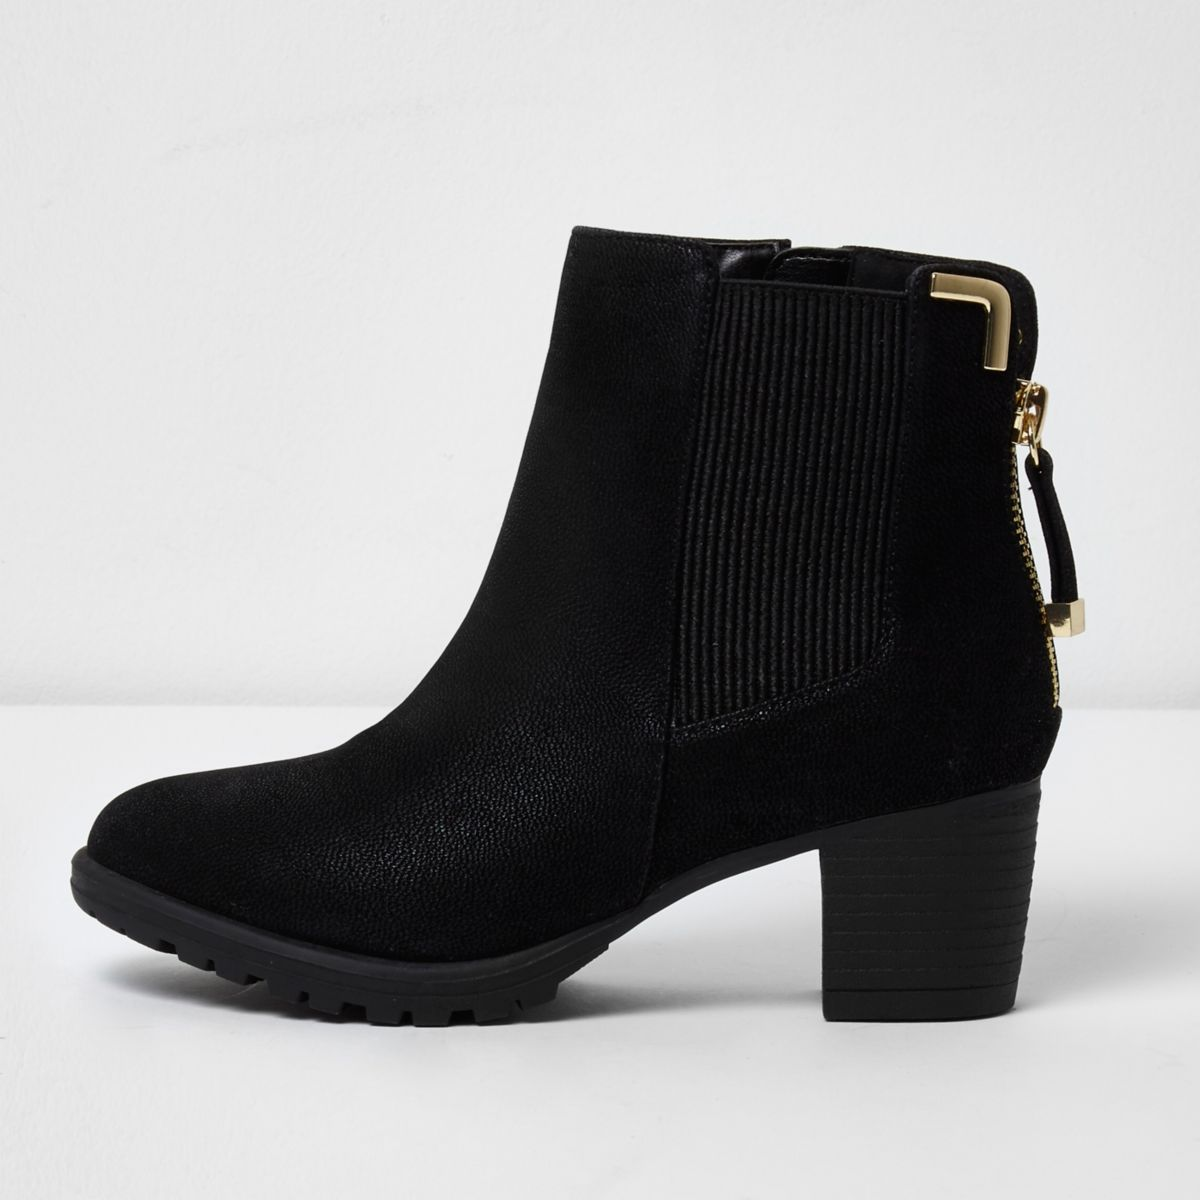 River Island Faux leather block heel shoe boots